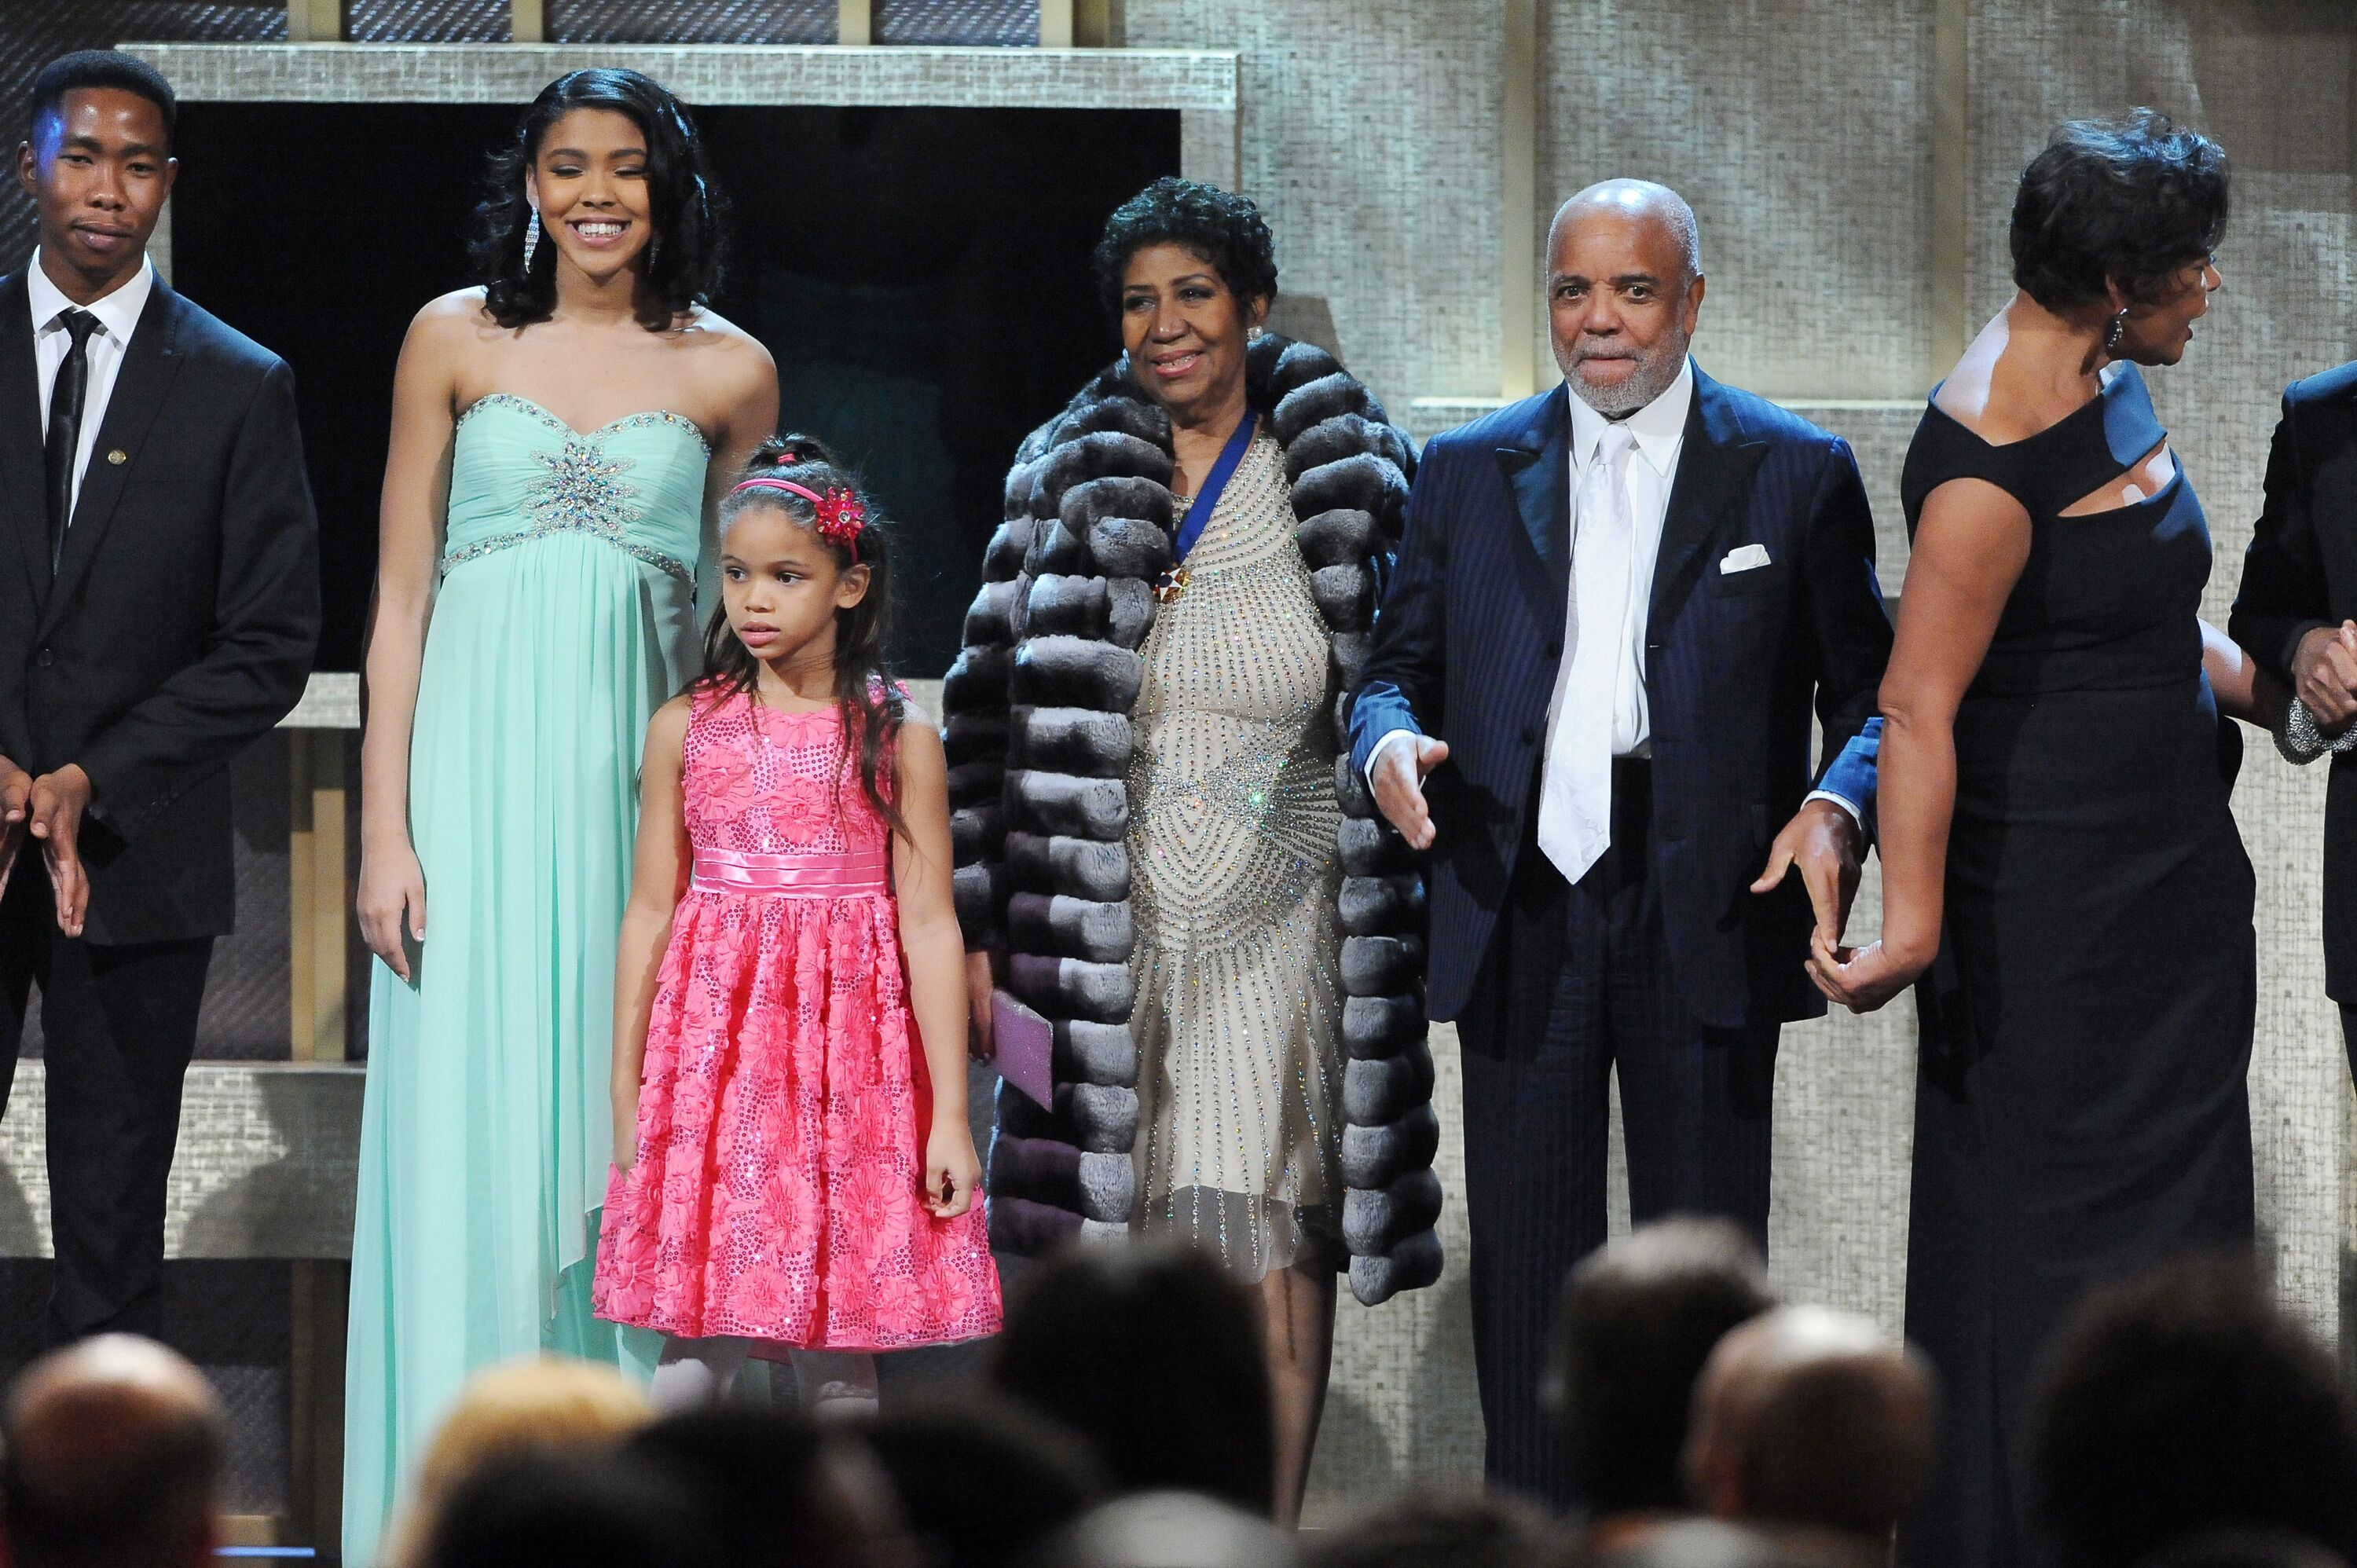 Aretha Franklin on-stage with her family | Source: Getty Images